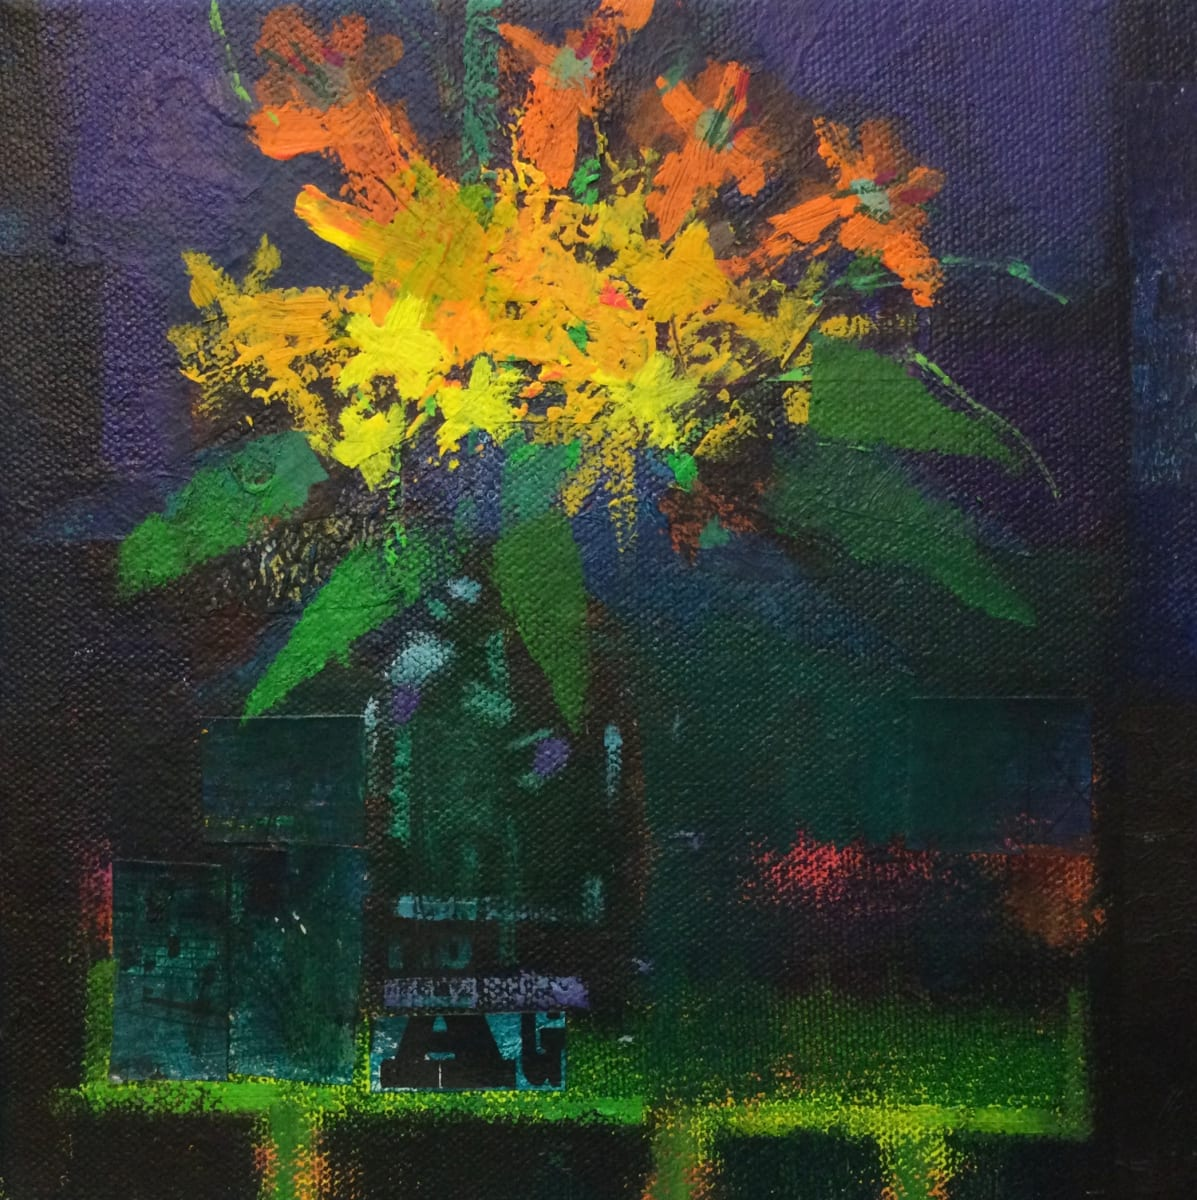 Evening blooms 2 by francis boag